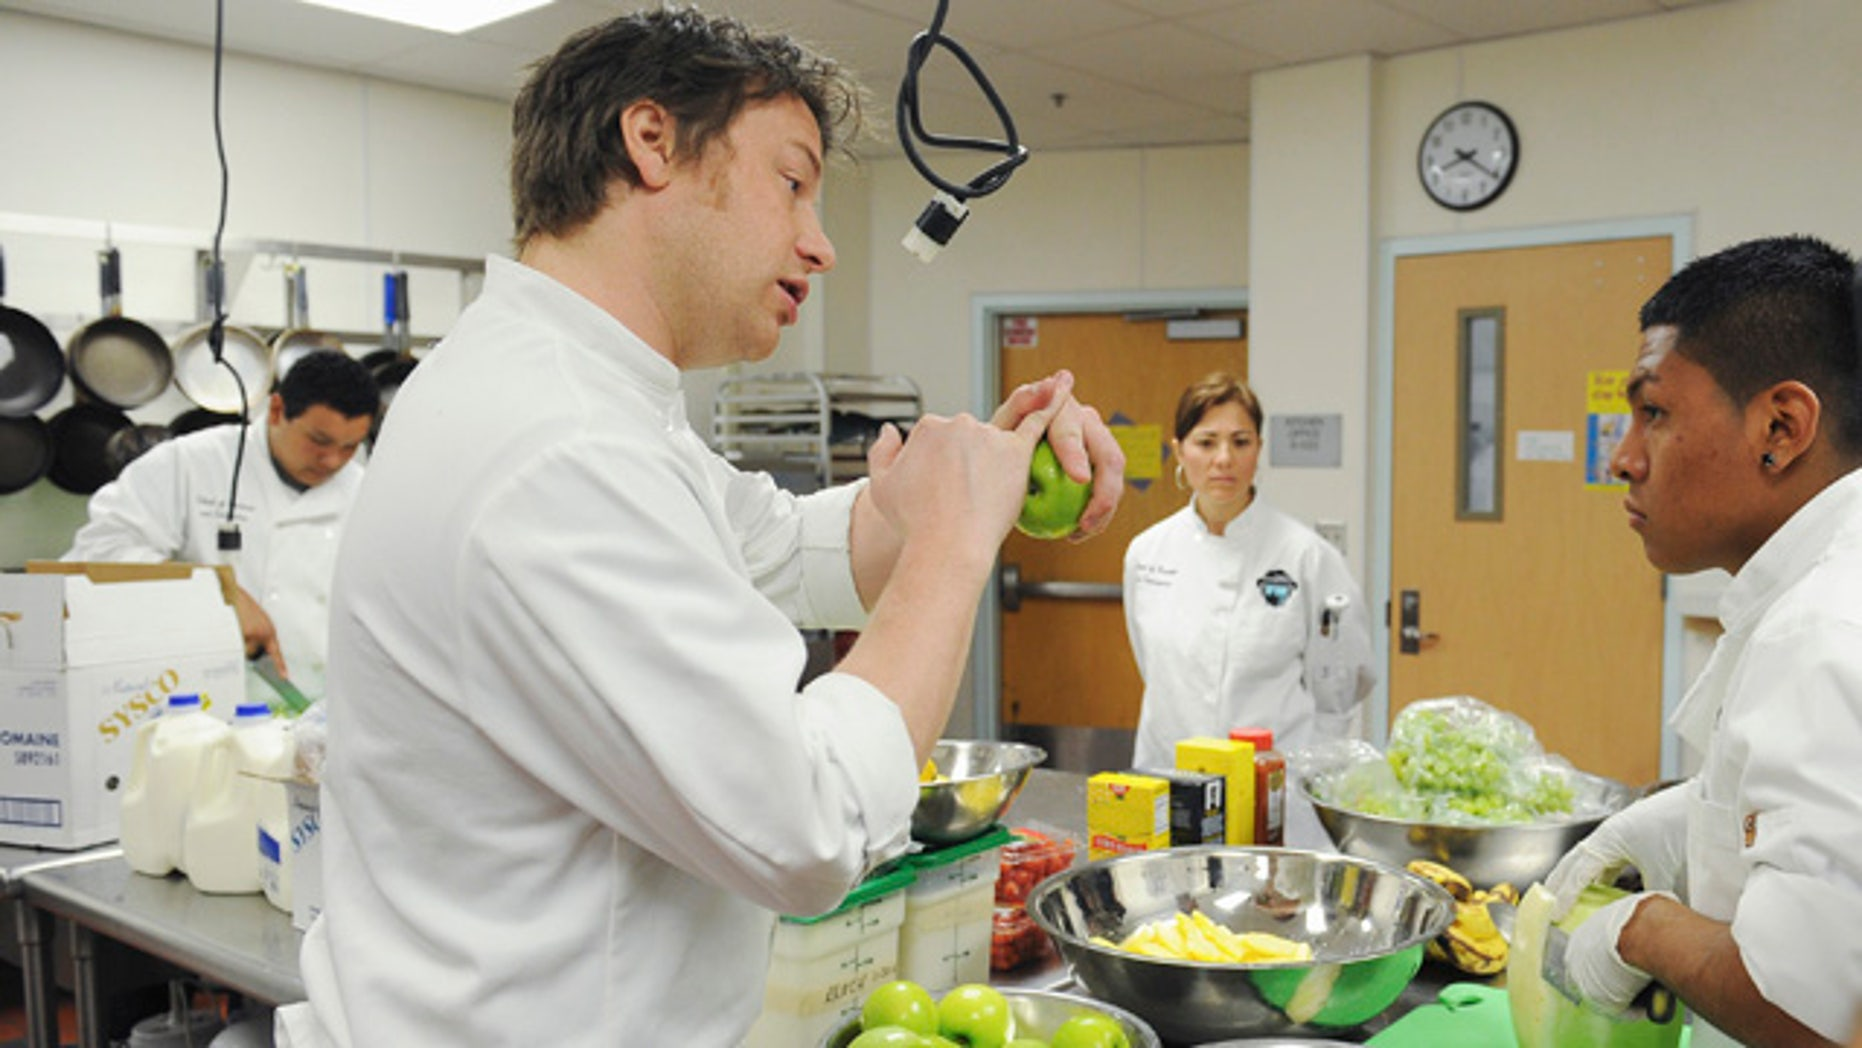 """This undated photo courtesy of ABC shows celebrity chef Jamie Oliver during a scene filmed in Los Angeles from the second season of """"Jamie Oliver's Food Revolution,"""" on the ABC Television Network. The second season of """"Jamie Olivers Food Revolution,"""" which begins Tuesday, April 12, started poorly when the Los Angeles school district barred Oliver's cameras _ greatly complicating a show that focuses on school lunches.     (AP Photo/ABC, Mitch Haddad)"""